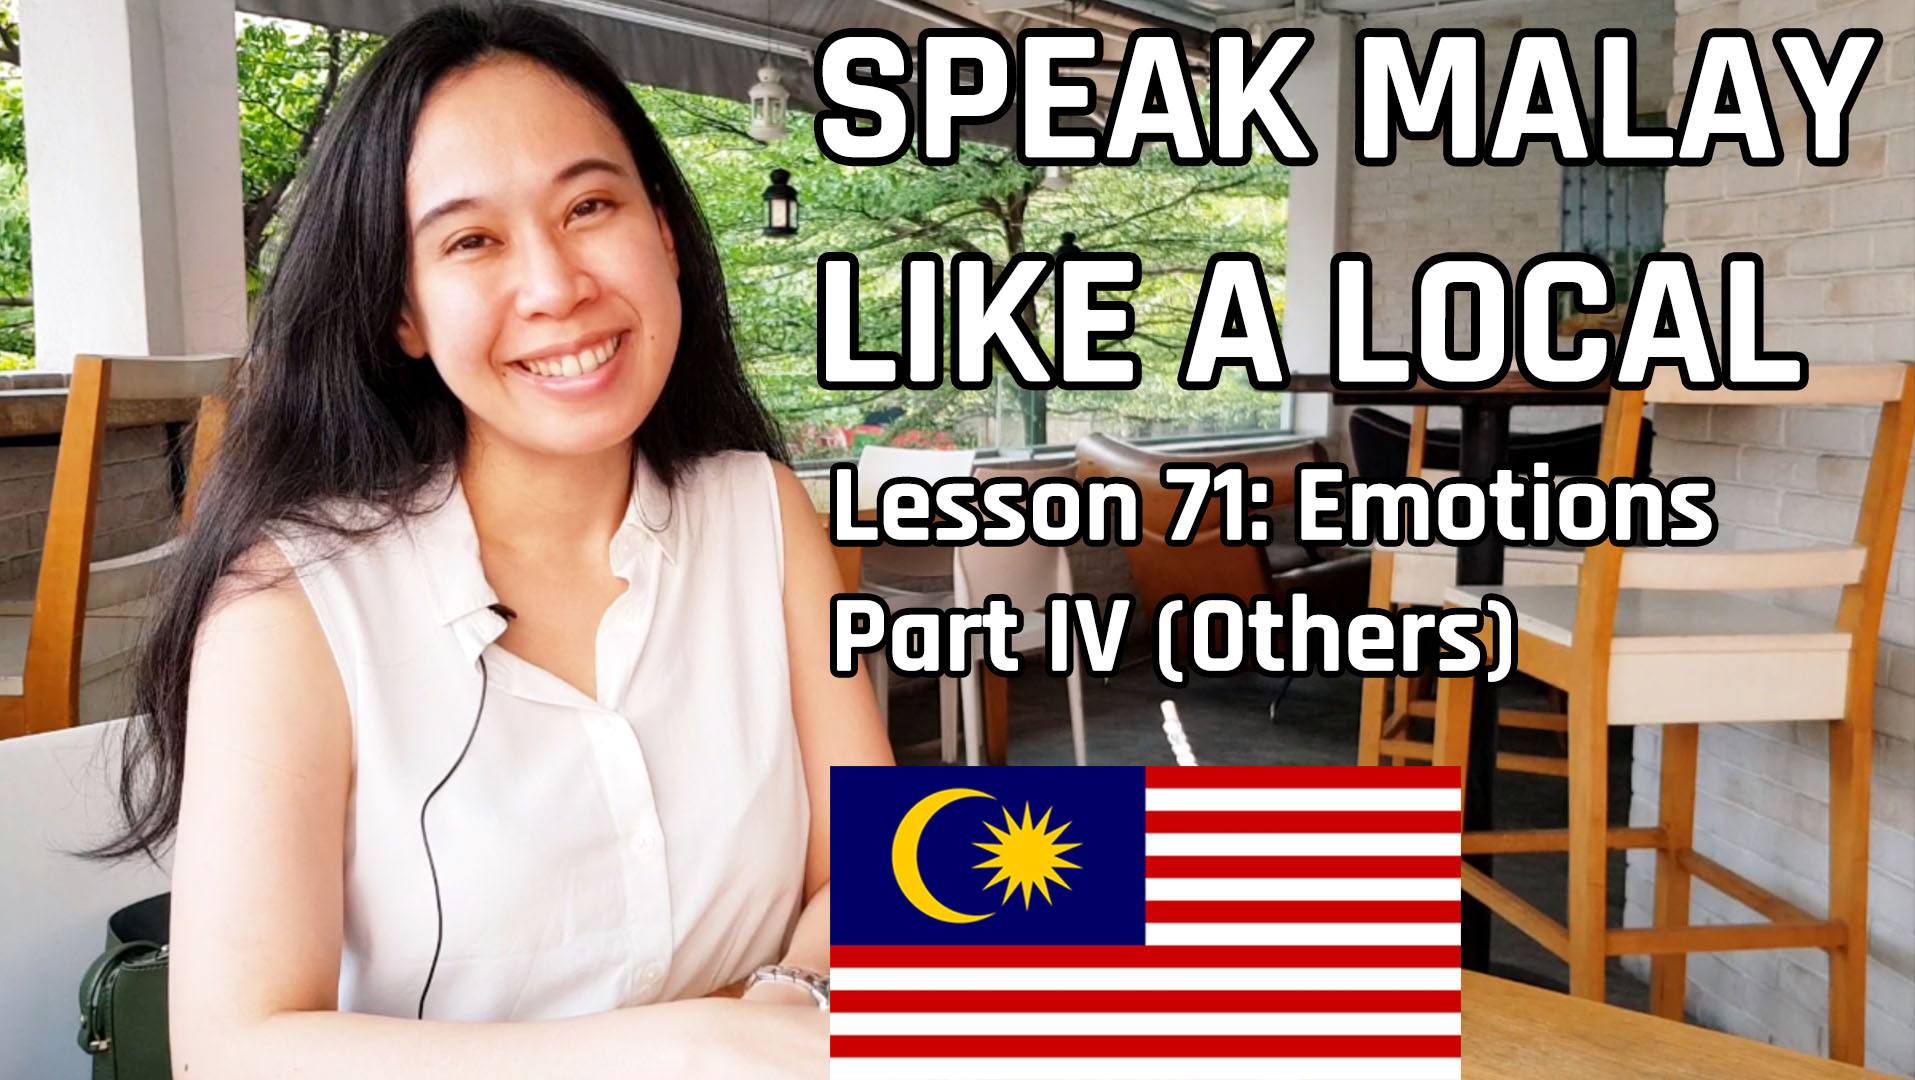 Speak Malay Like a Local – Lesson 71 : Emotions Part IV (Others)